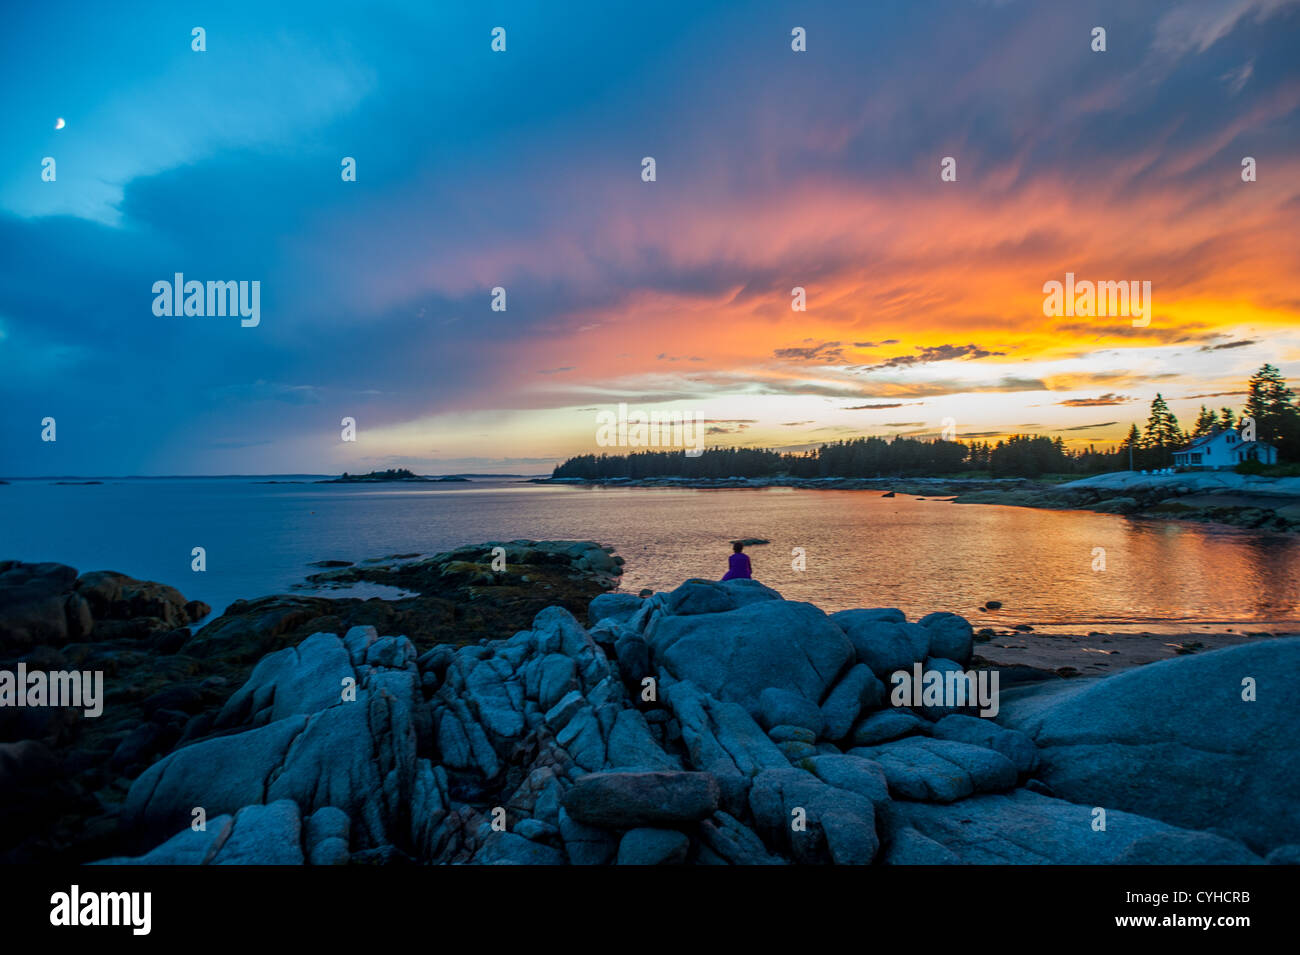 Sunset on the rocky terrain of Deer Isle, Maine - Stock Image